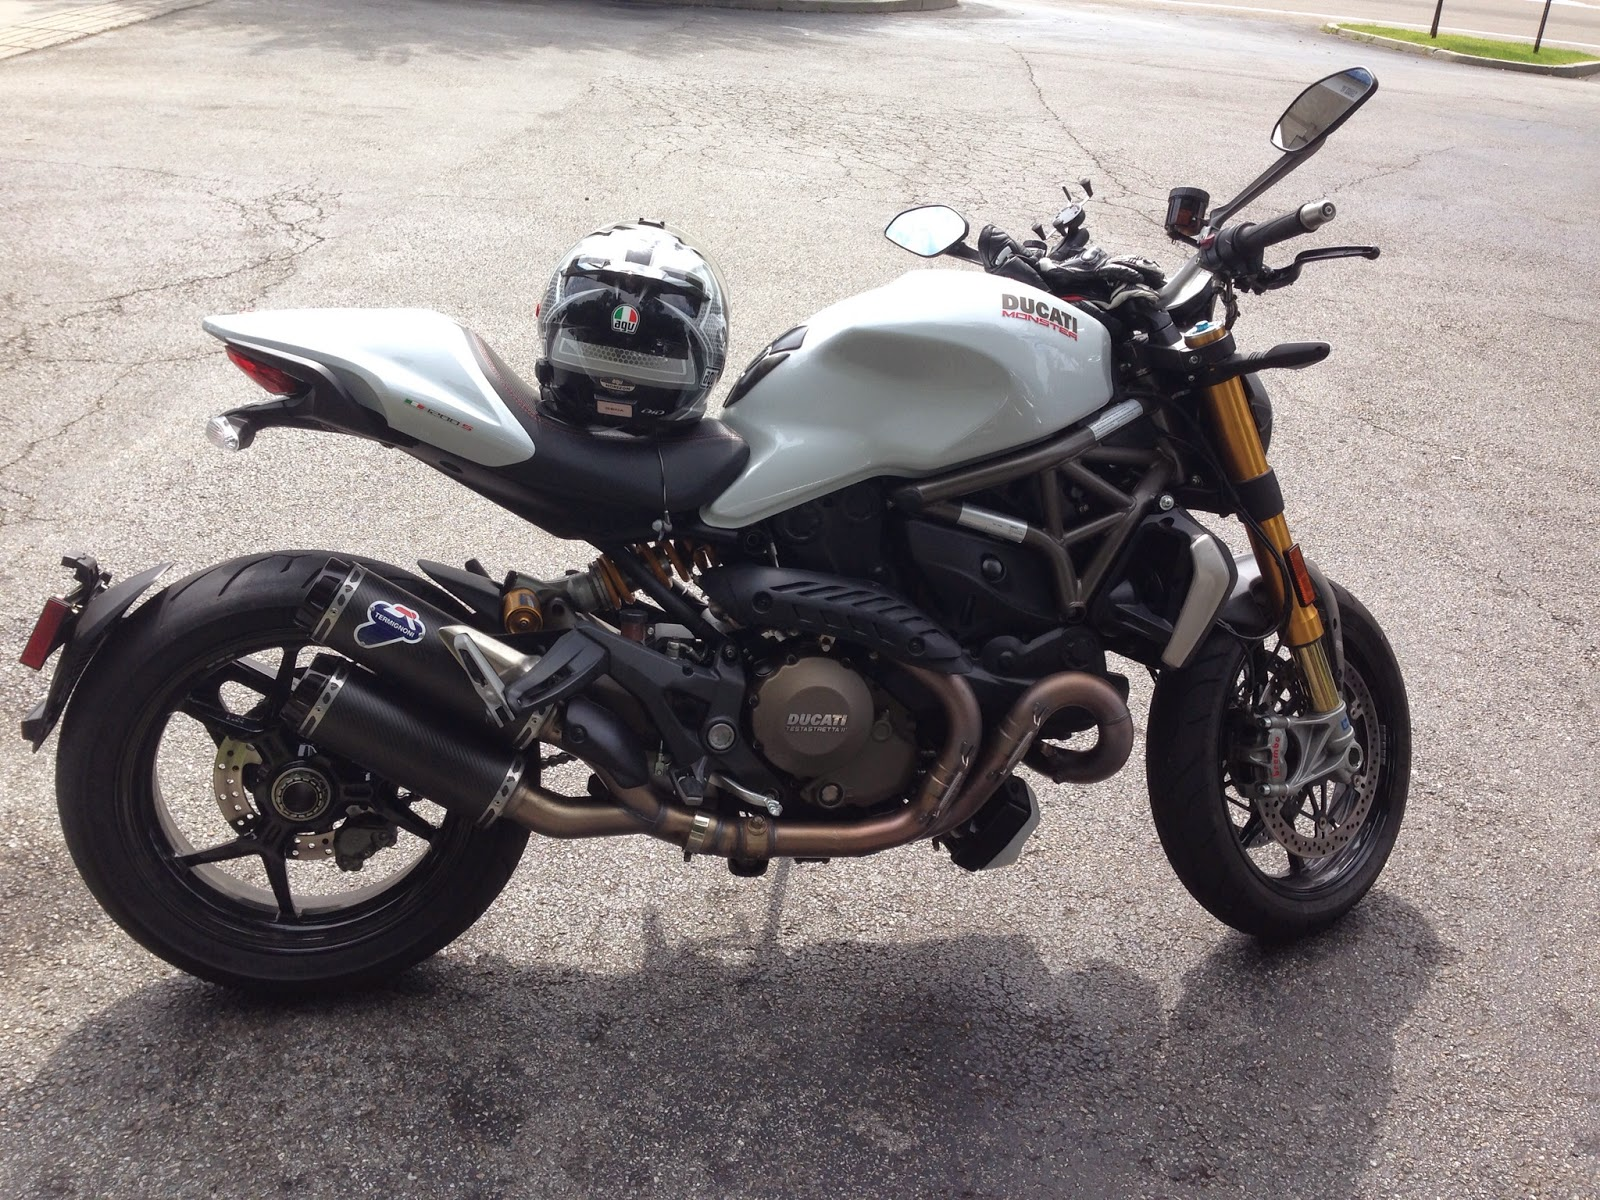 A Chance To Admire The New Ducati Monster 1200S Below Which Is Hell Of But Totally Different Design From Classic I Know